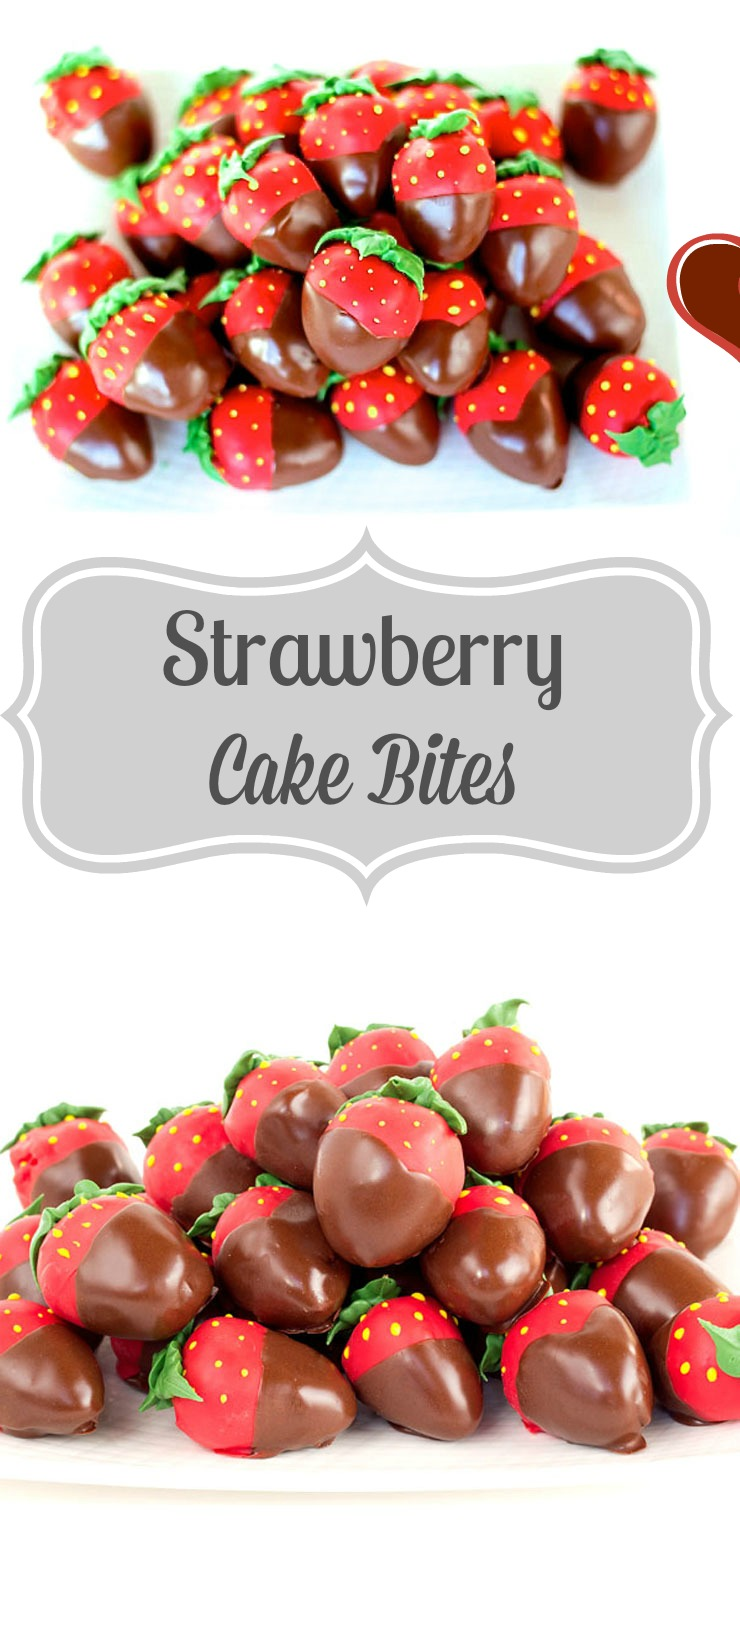 Strawberry-Cake-Bites-by-www.thebearfootbaker.com